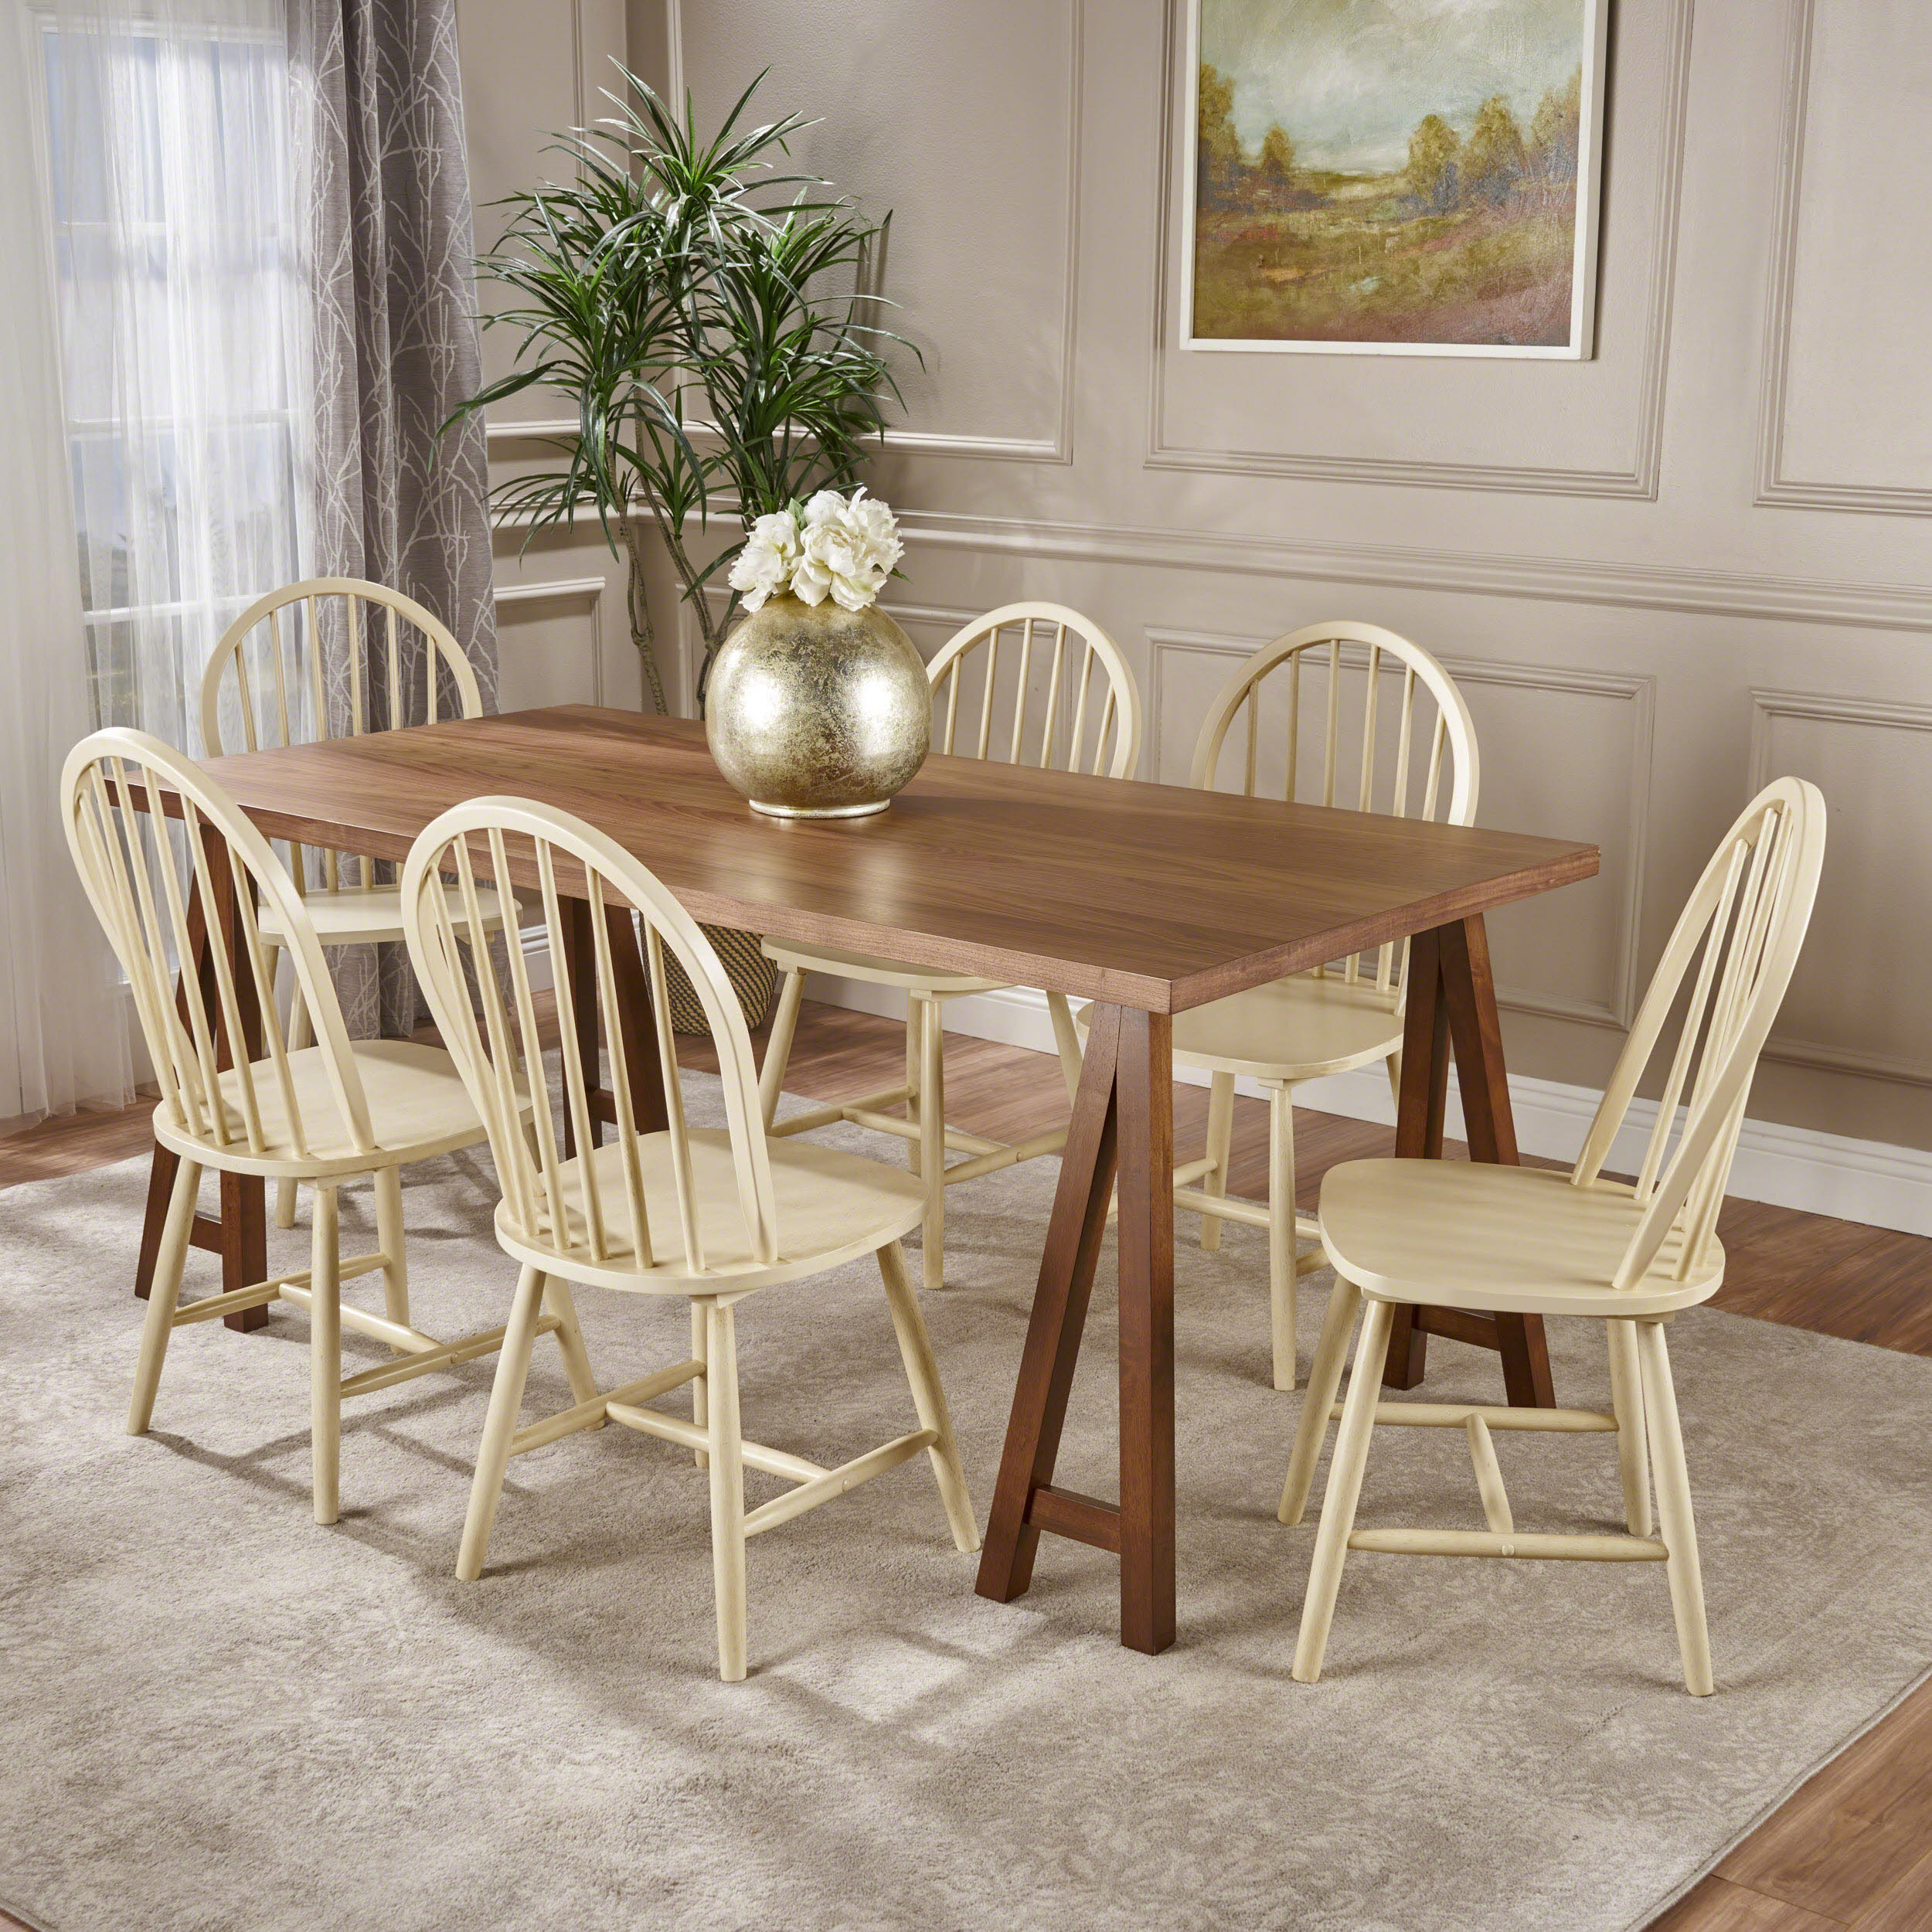 Amy Farmhouse Cottage 7 Piece Faux Wood Dining Set With Finished Rubberwood  Chairs, Natural Walnut